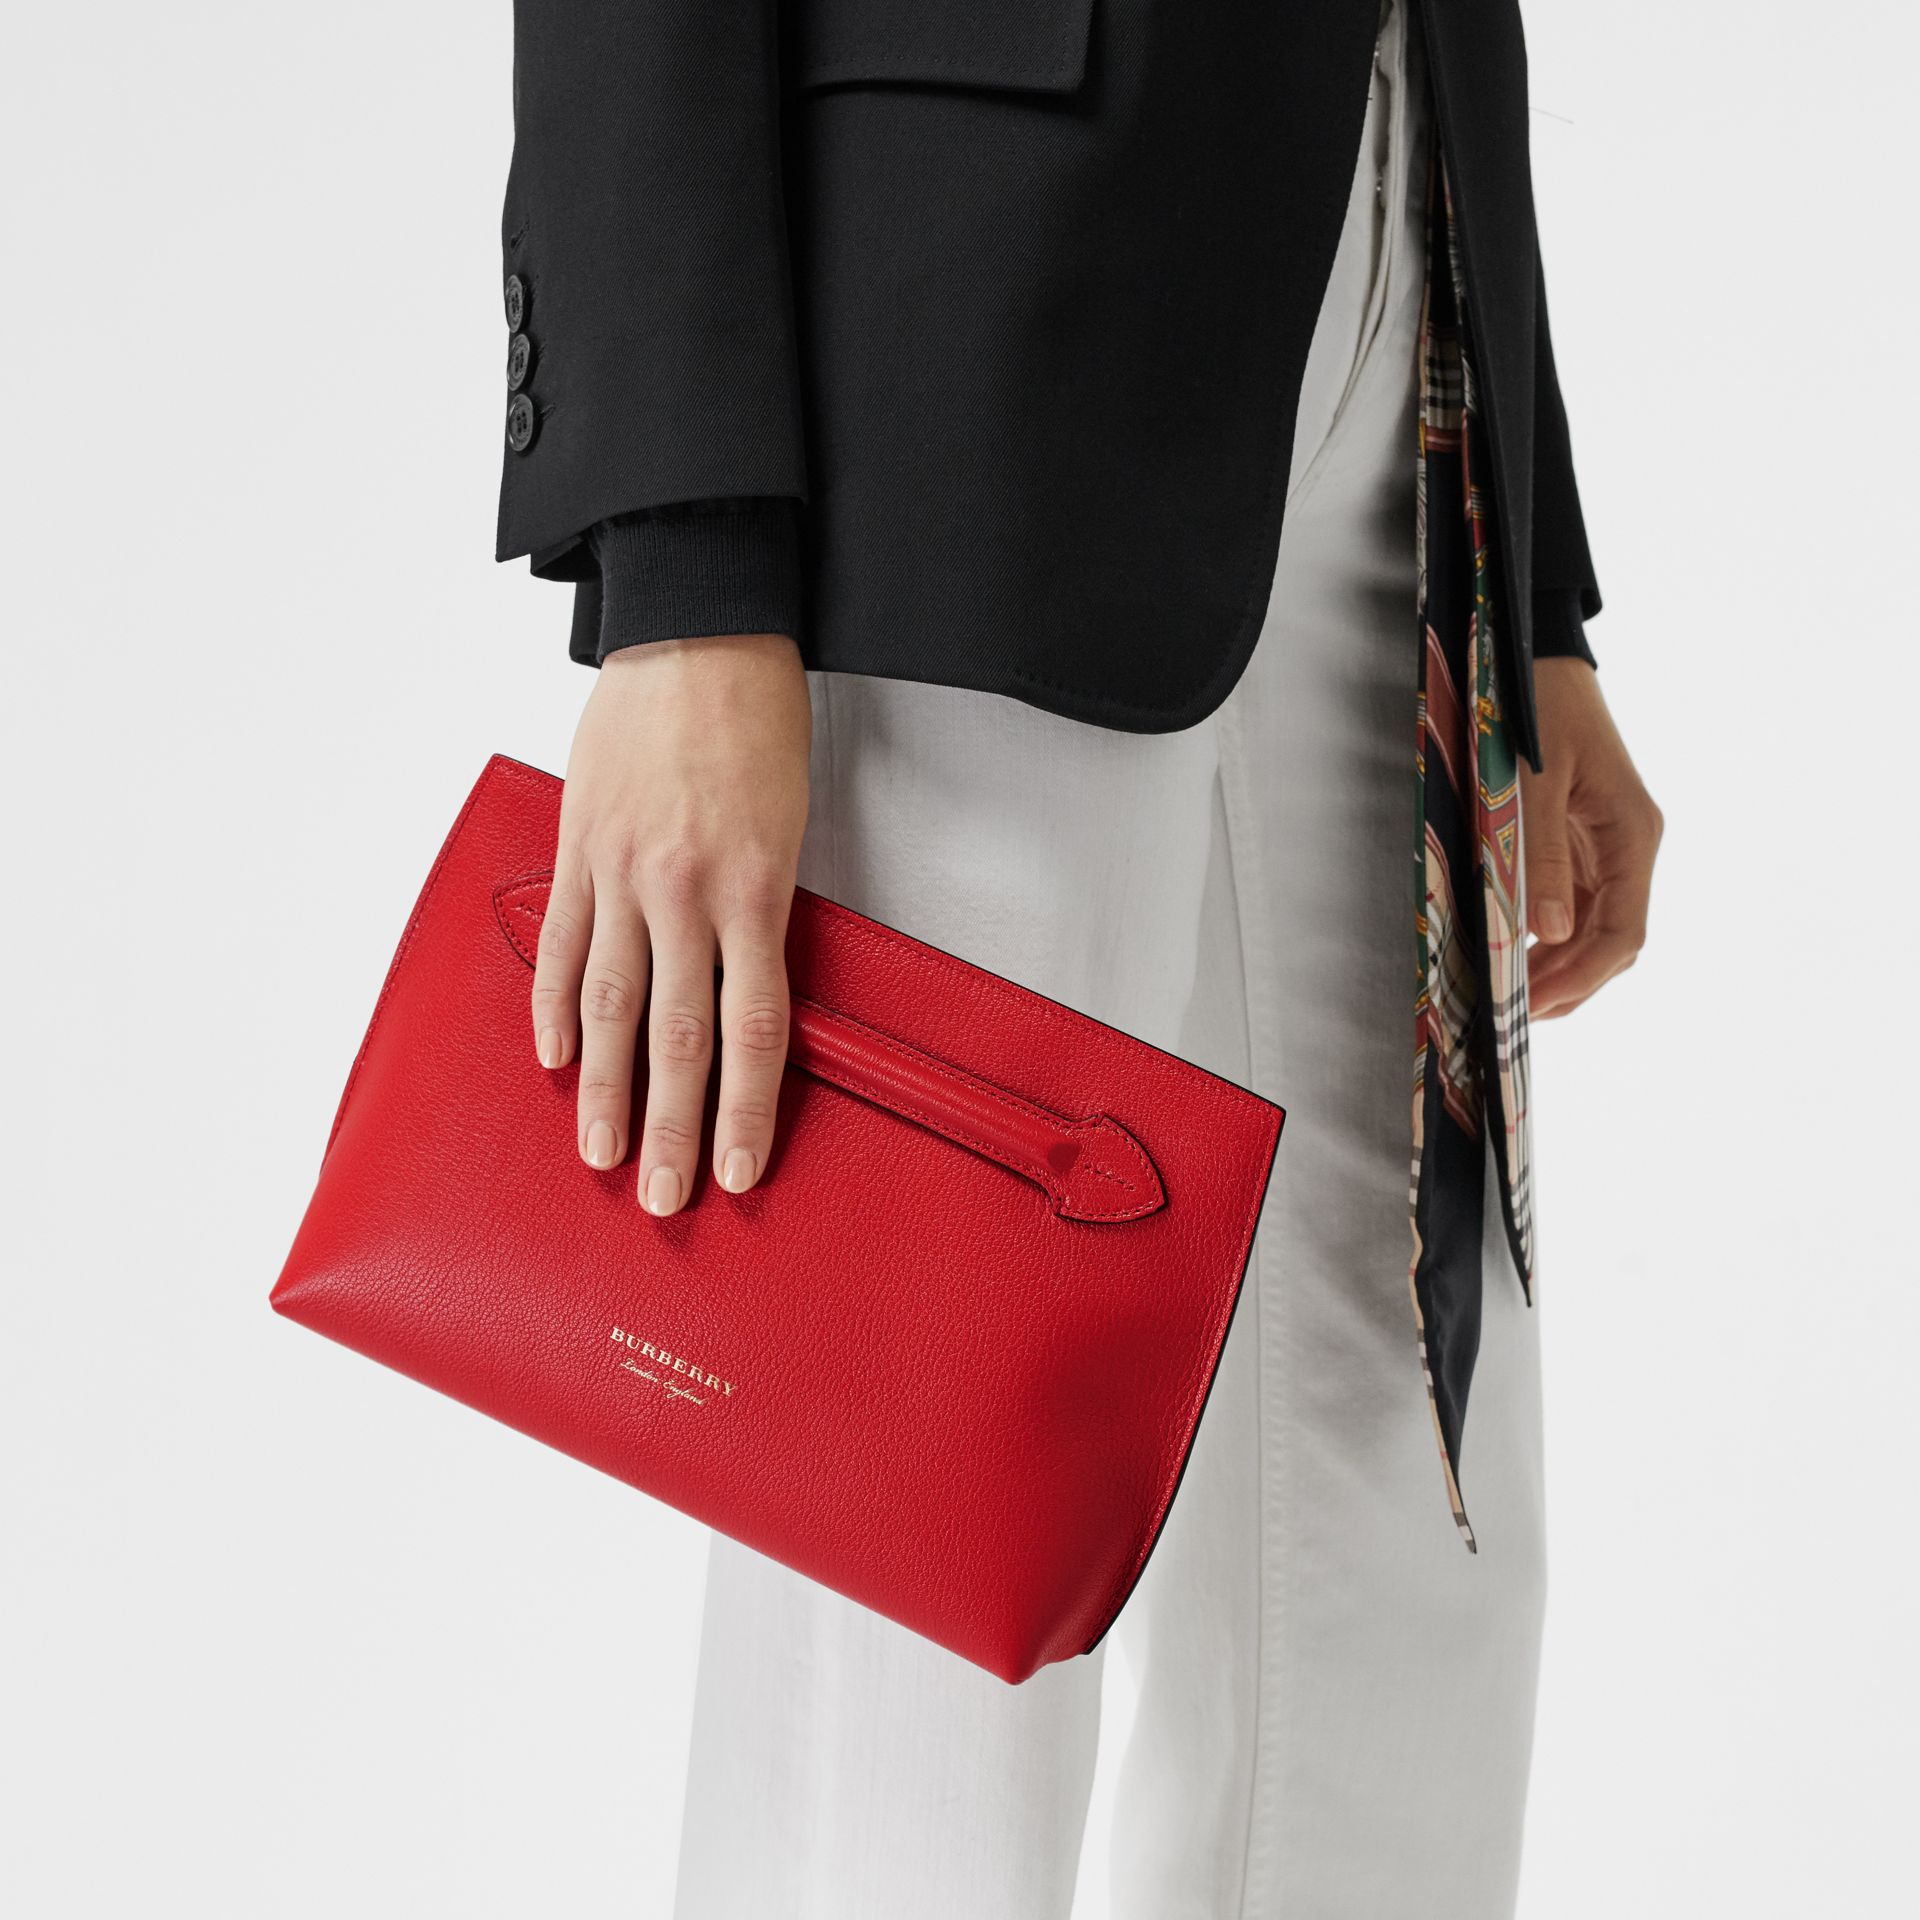 Grainy Leather Wristlet Clutch in Bright Red - Women | Burberry - gallery image 3